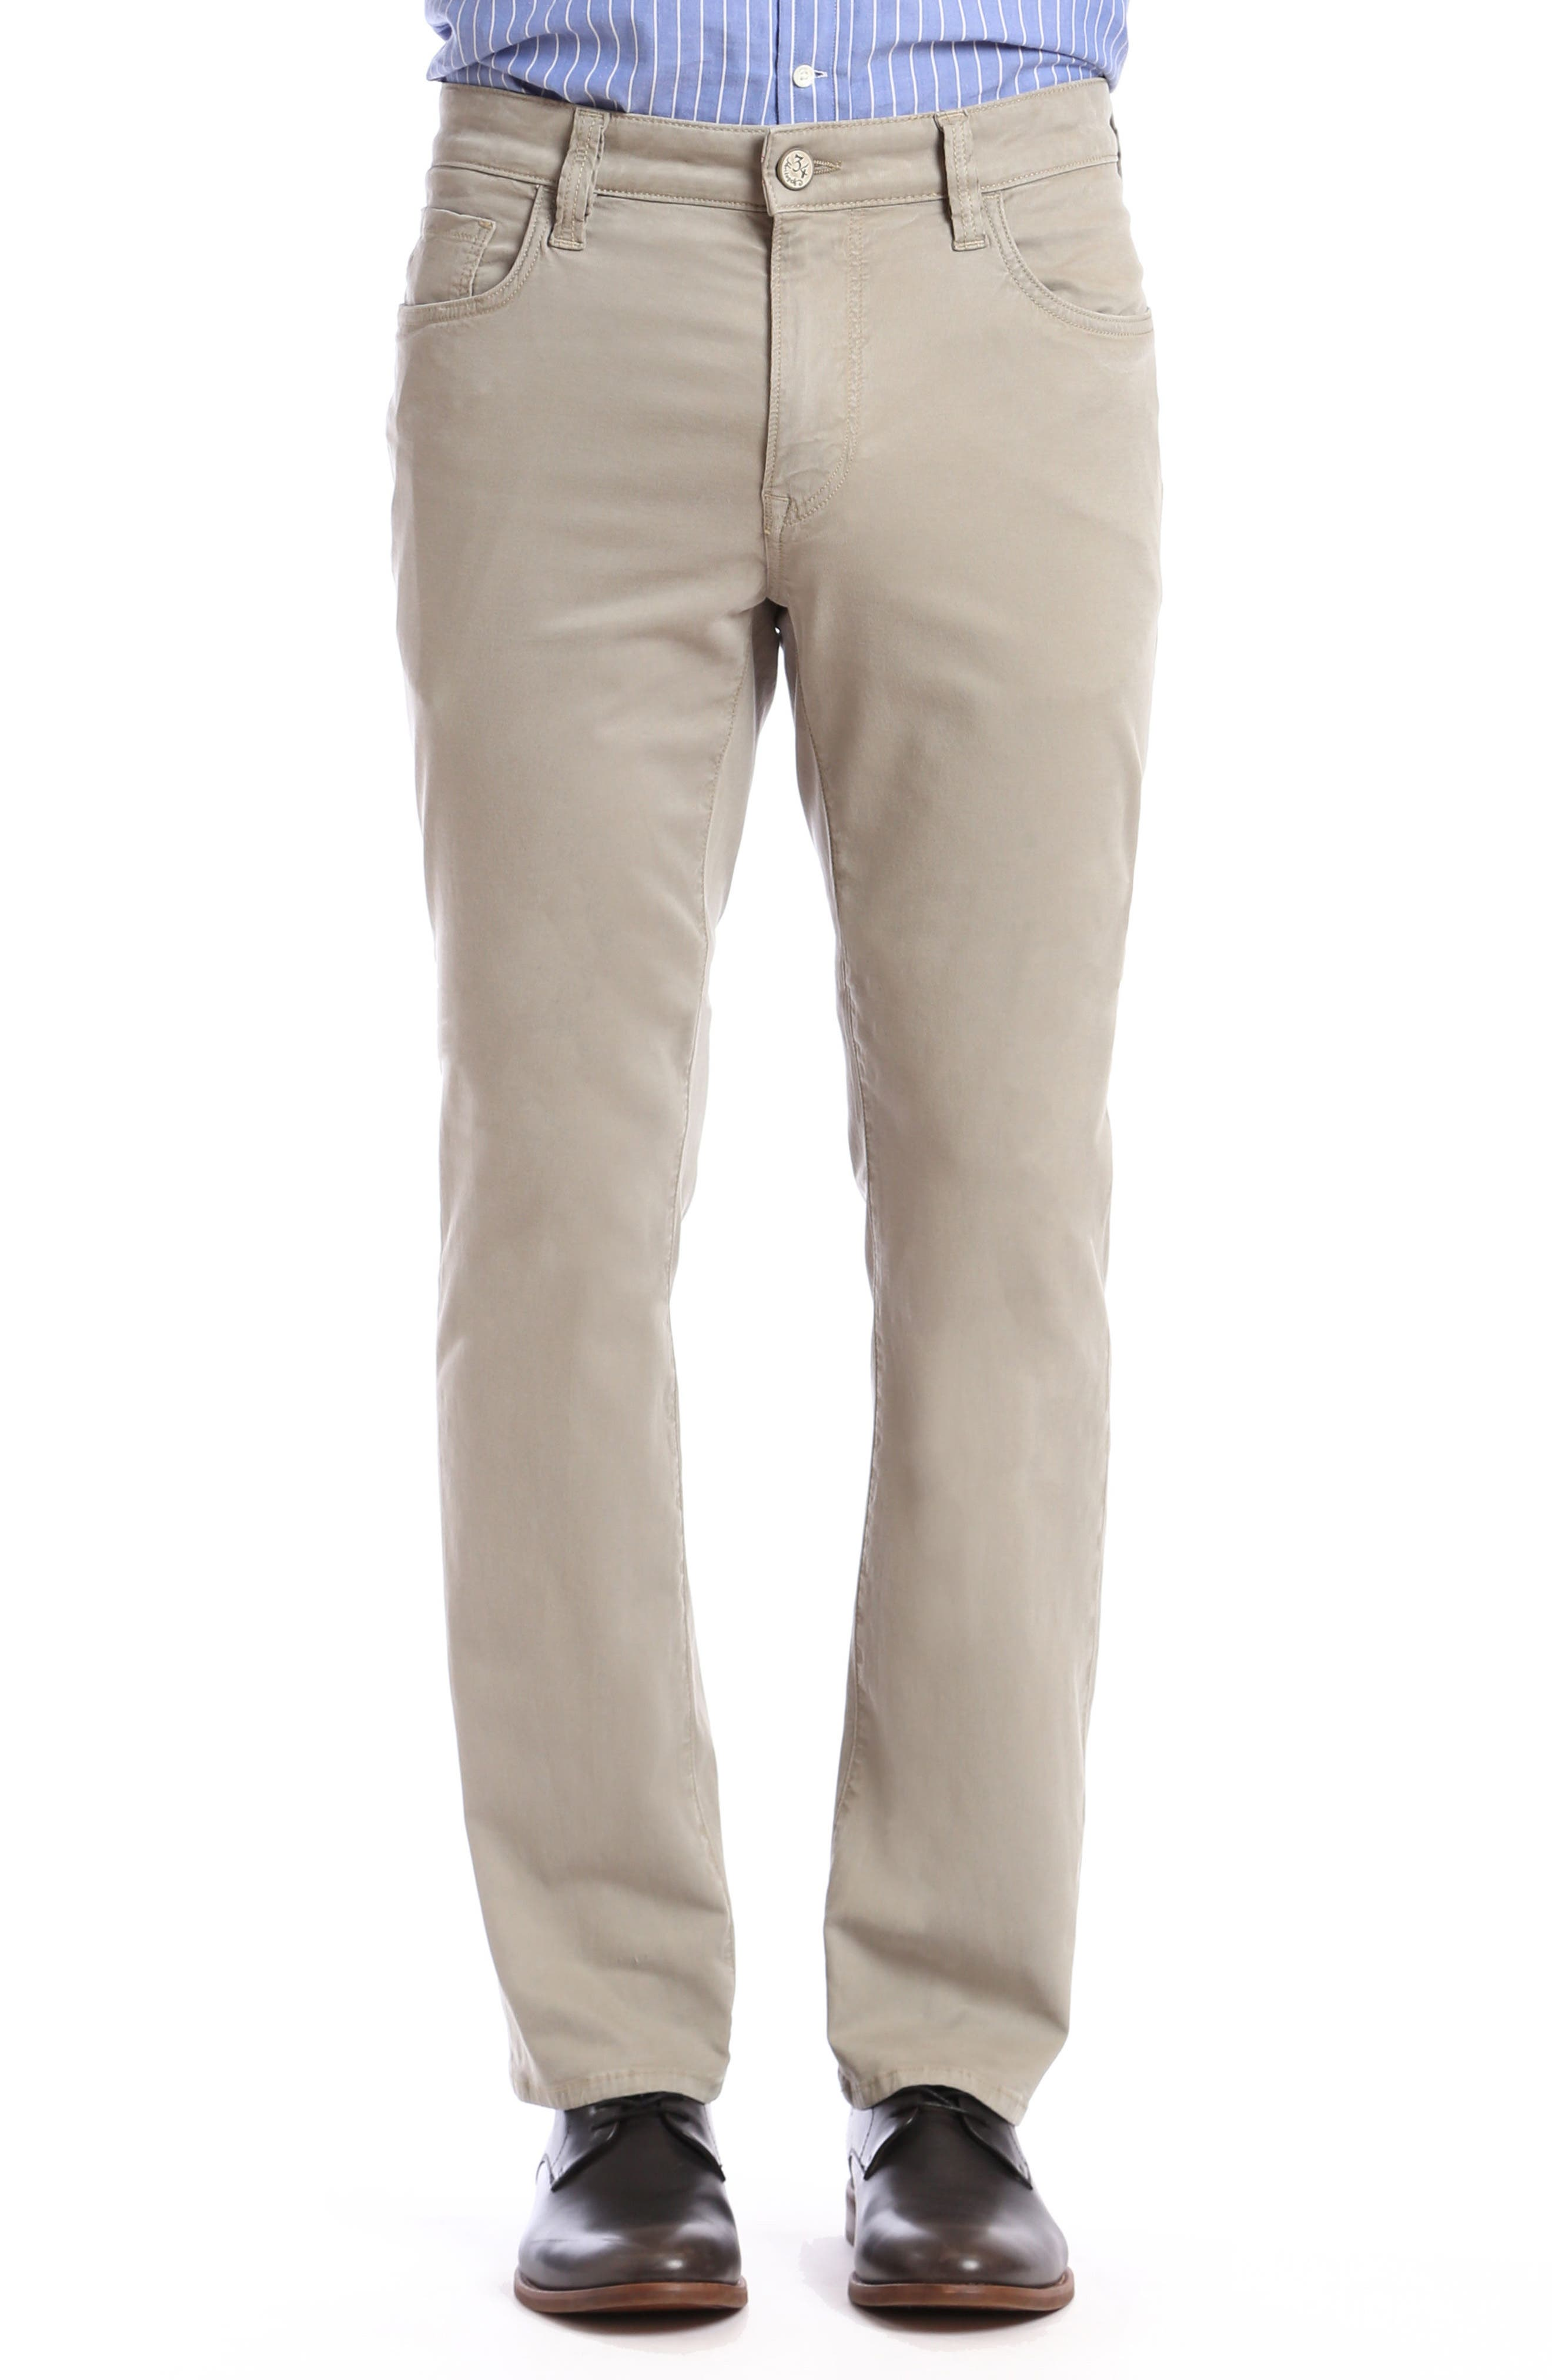 Charisma Relaxed Fit Jeans,                             Main thumbnail 1, color,                             FINE TWILL